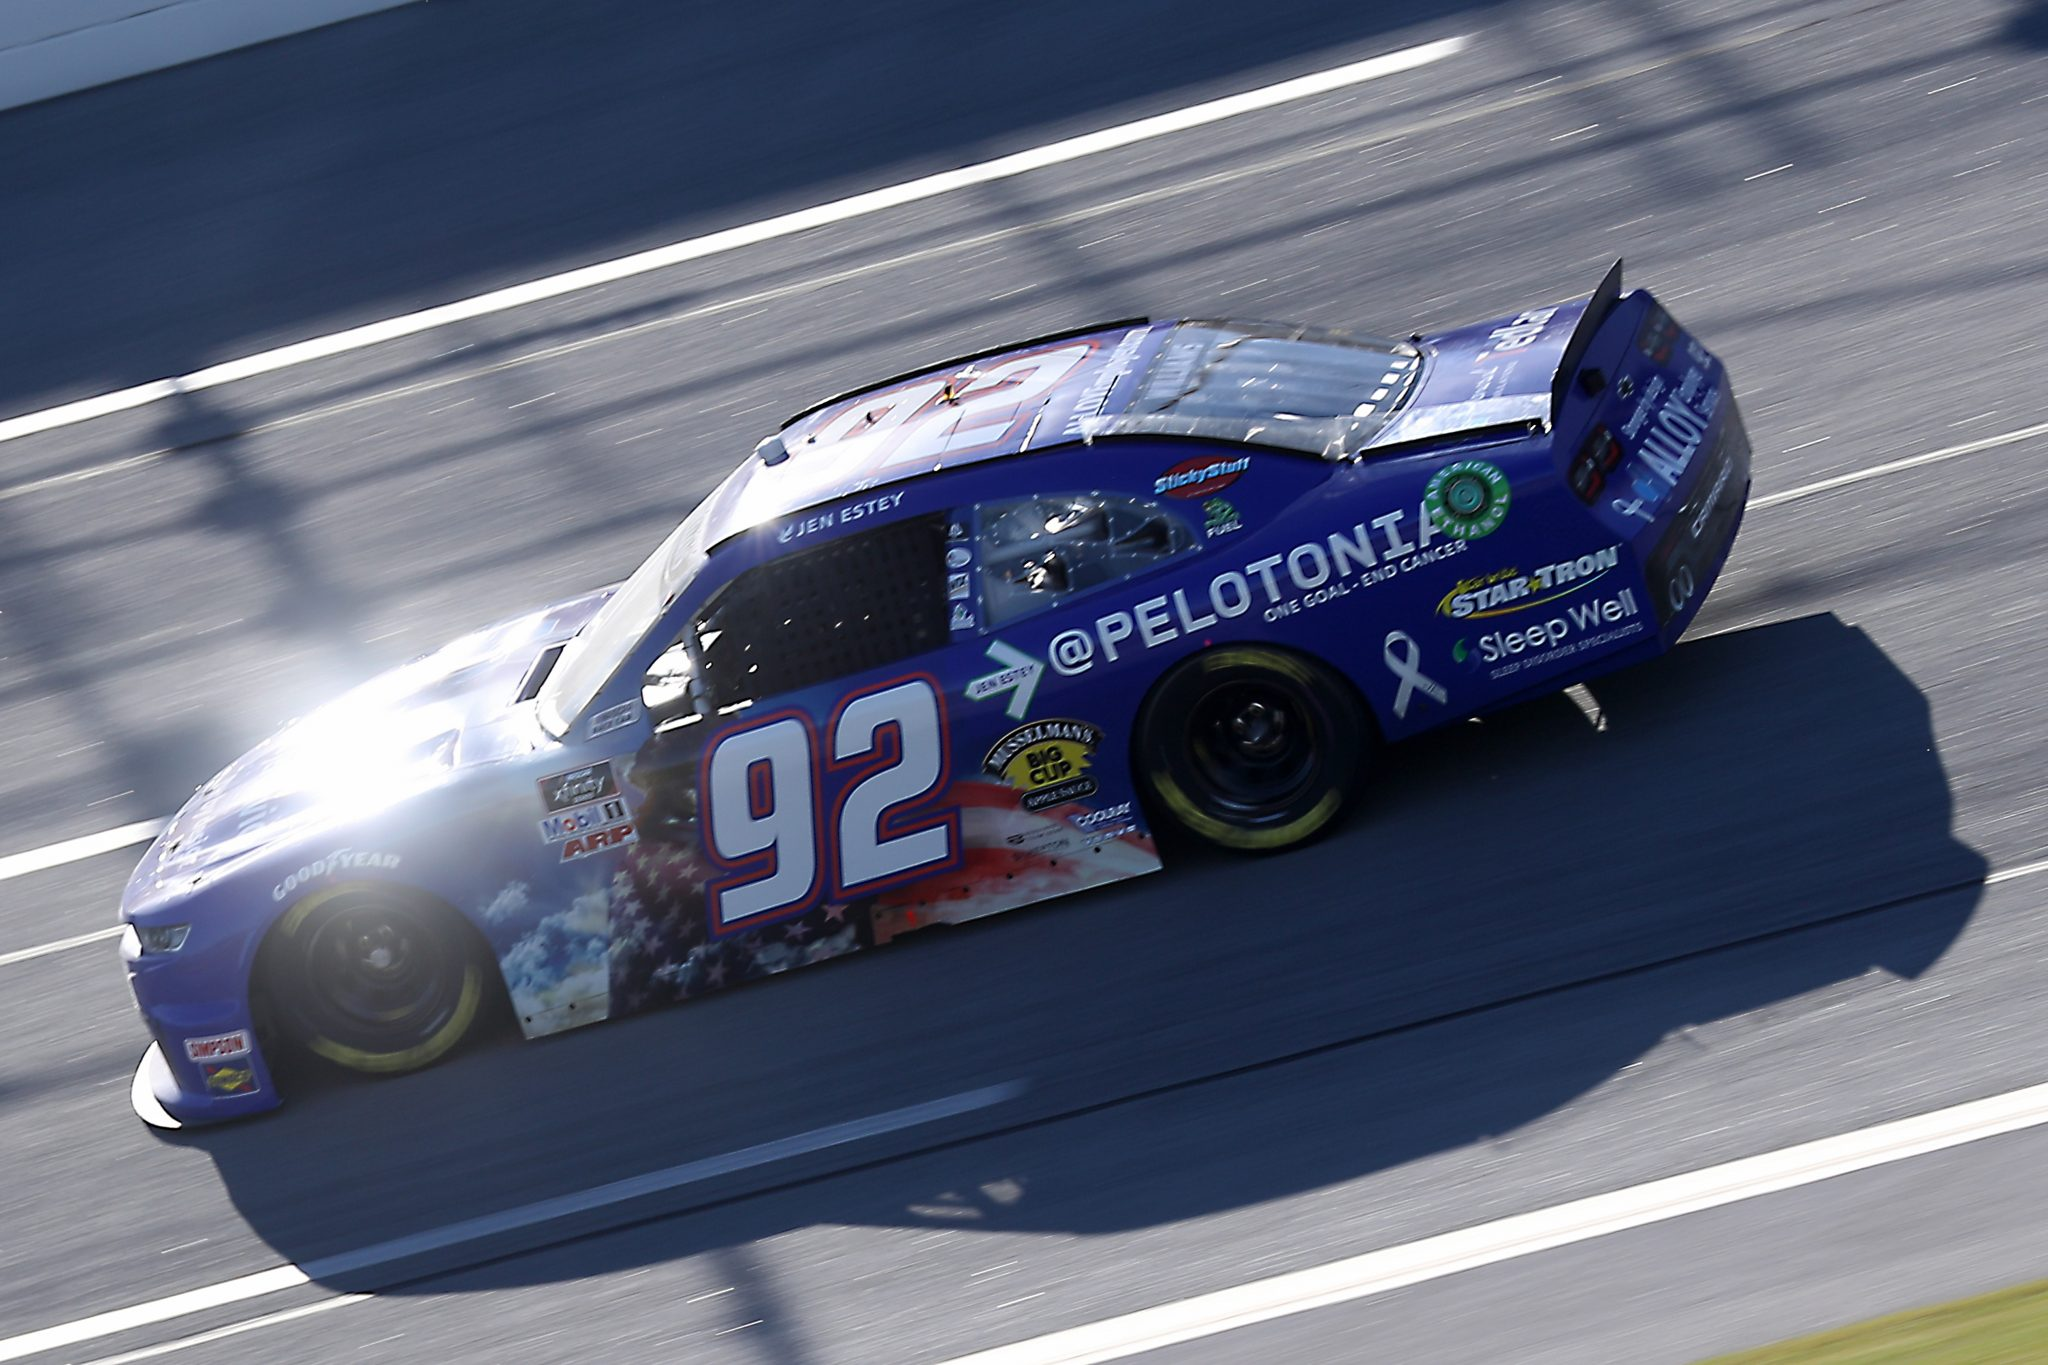 TALLADEGA, ALABAMA - OCTOBER 03: Josh Williams, driver of the #92 Alloy Employer Services/Coolray Heating & Air, drives during the NASCAR Xfinity Series Ag-Pro 300 at Talladega Superspeedway on October 03, 2020 in Talladega, Alabama. (Photo by Chris Graythen/Getty Images) | Getty Images